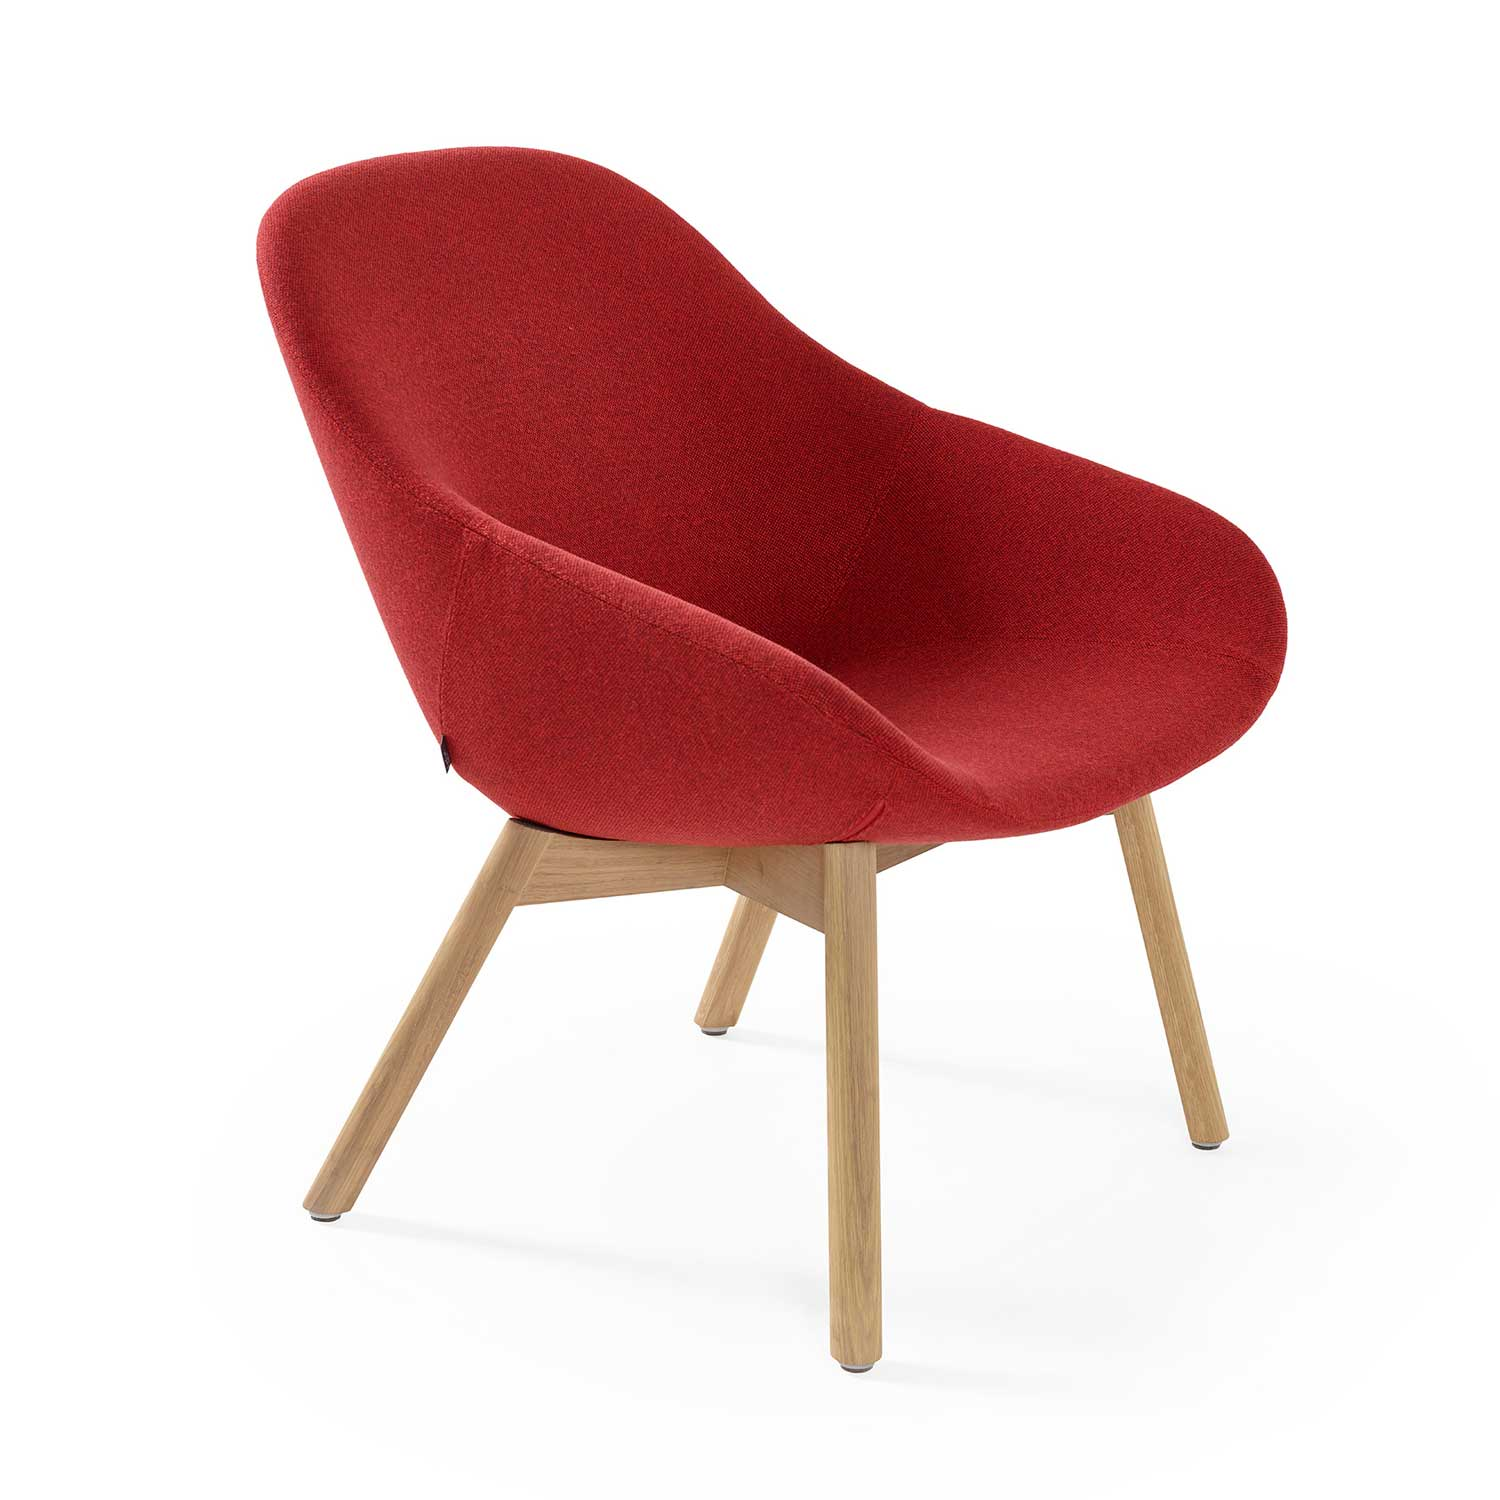 Beso Lounge Chairs By Artifort. Artifort_beso_lounge_wood Legs.  Artifort_beso_lounge_chairs